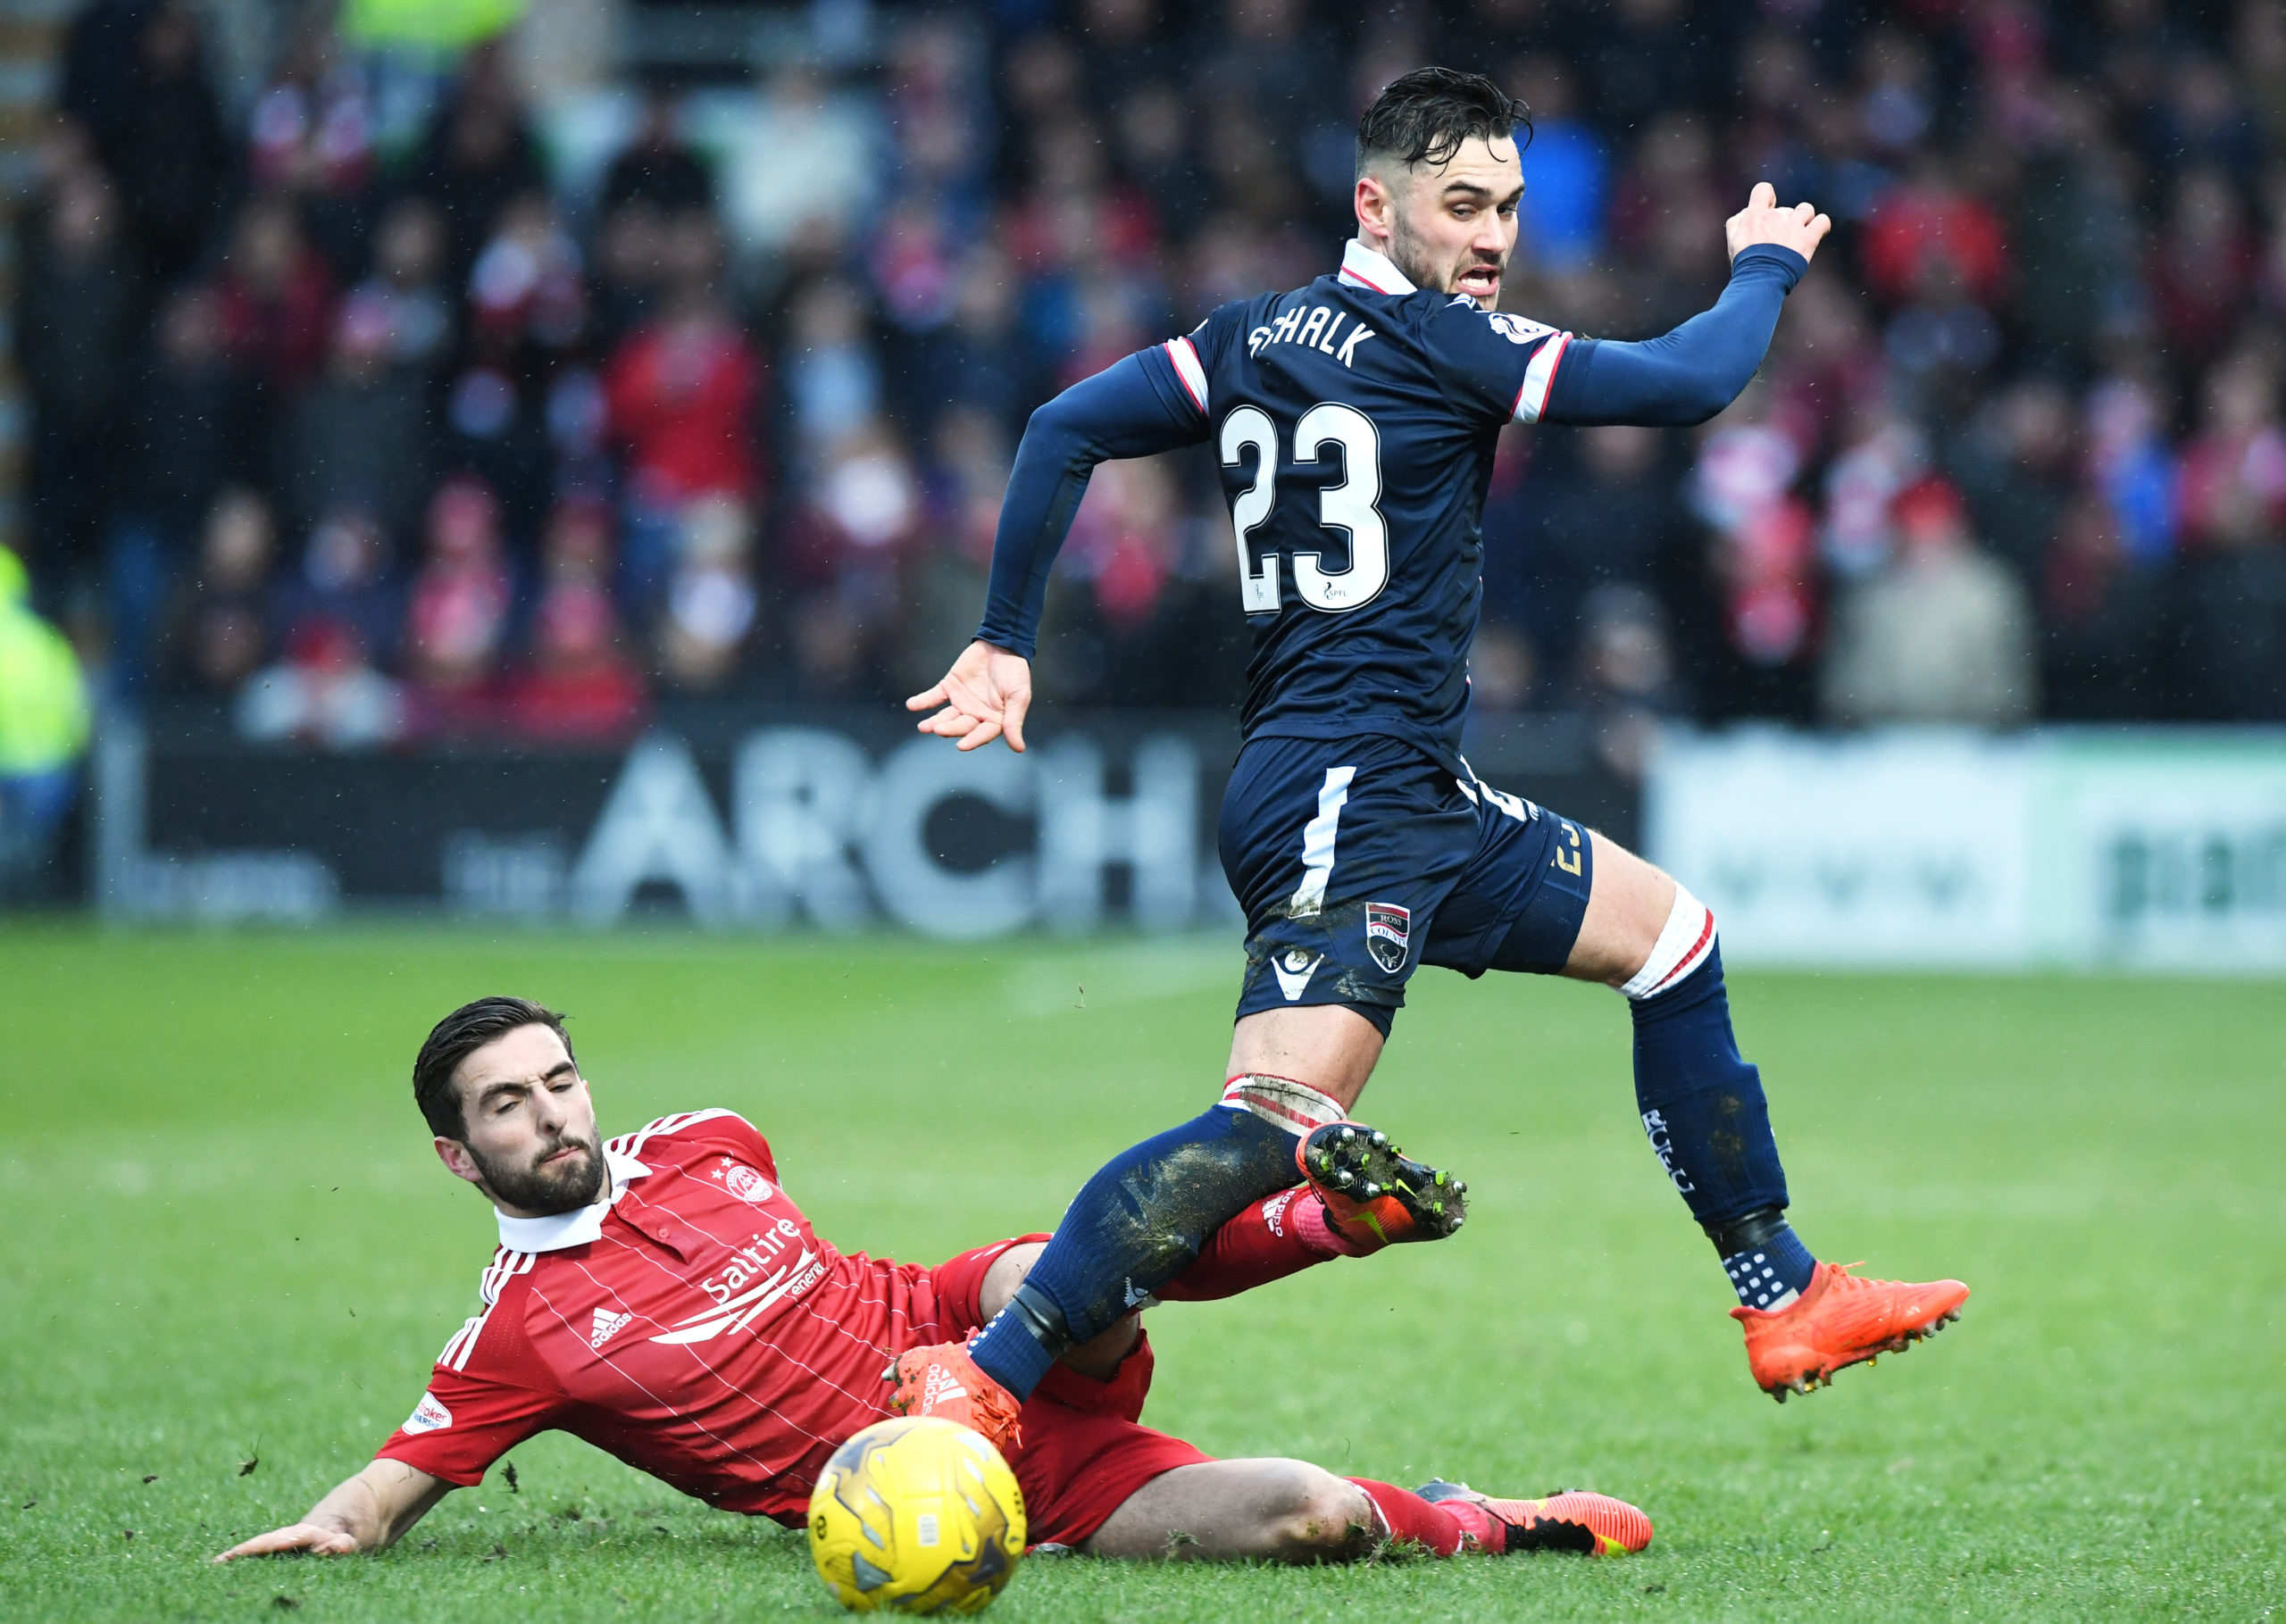 Alex Schalk in action against Aberdeen.